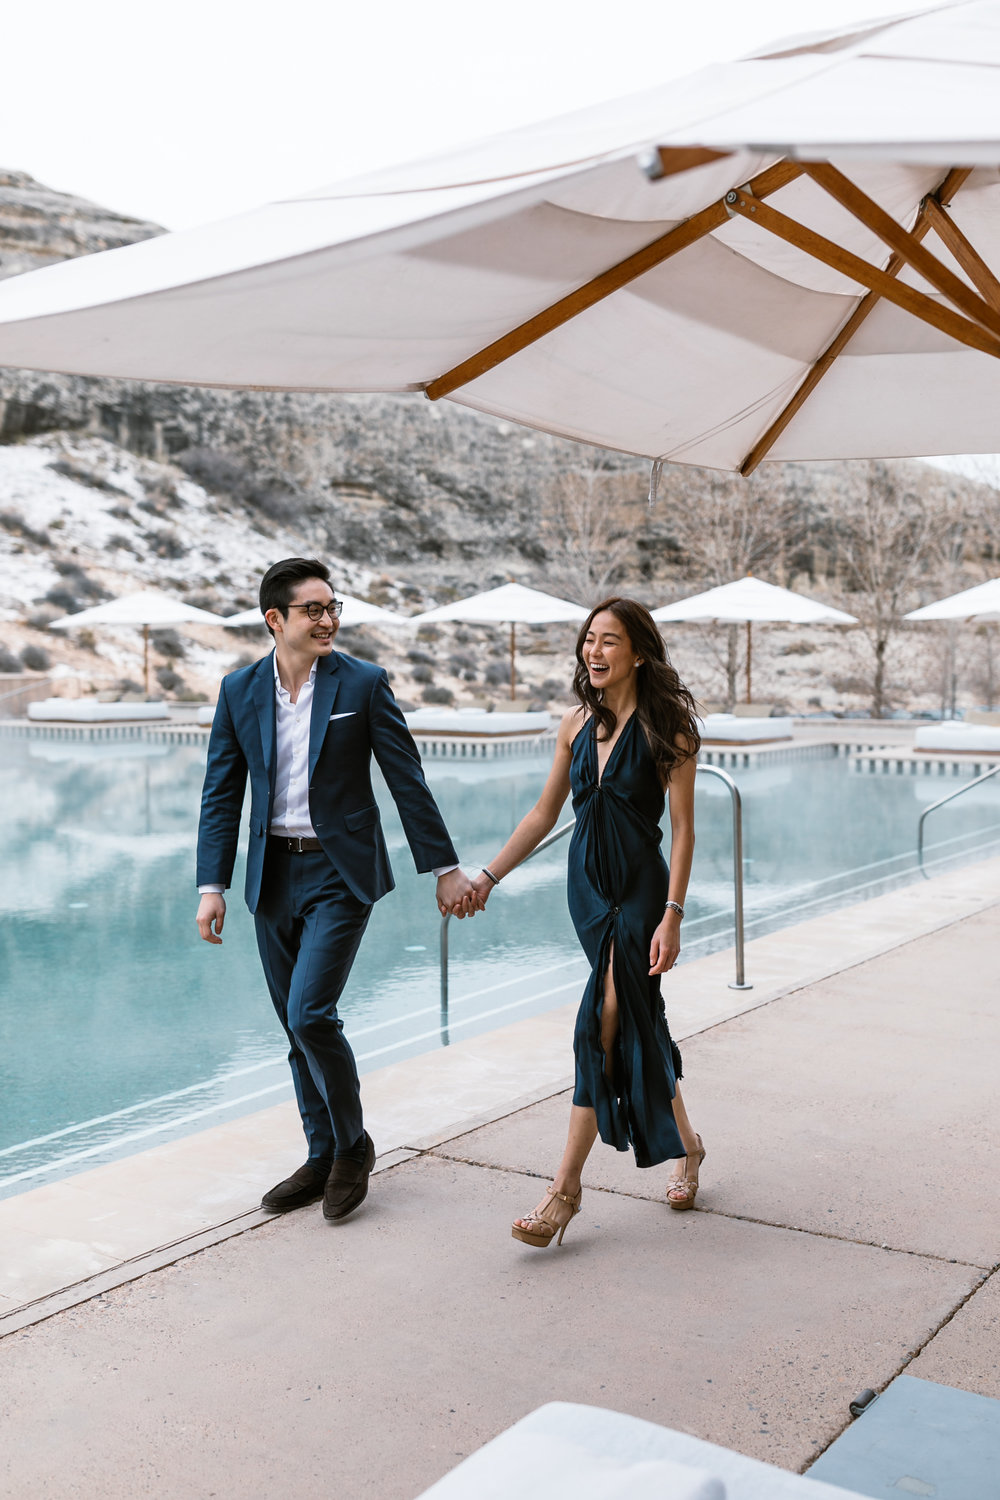 Amangiri offers a luxurious location for a destination elopement and honeymoon combination